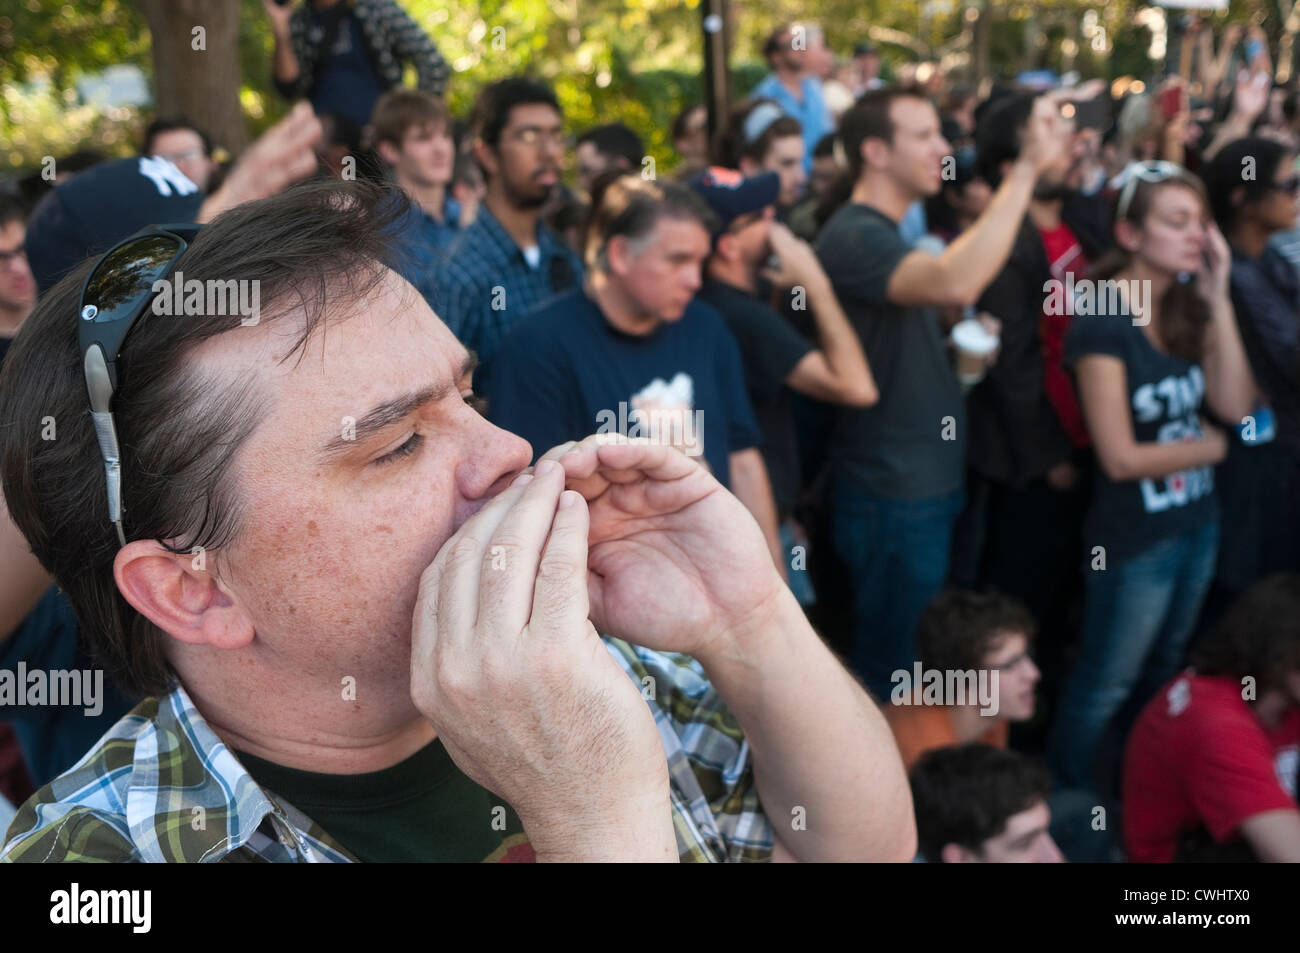 The Human Mic during an Occupy Wall Street General Assembly - Stock Image